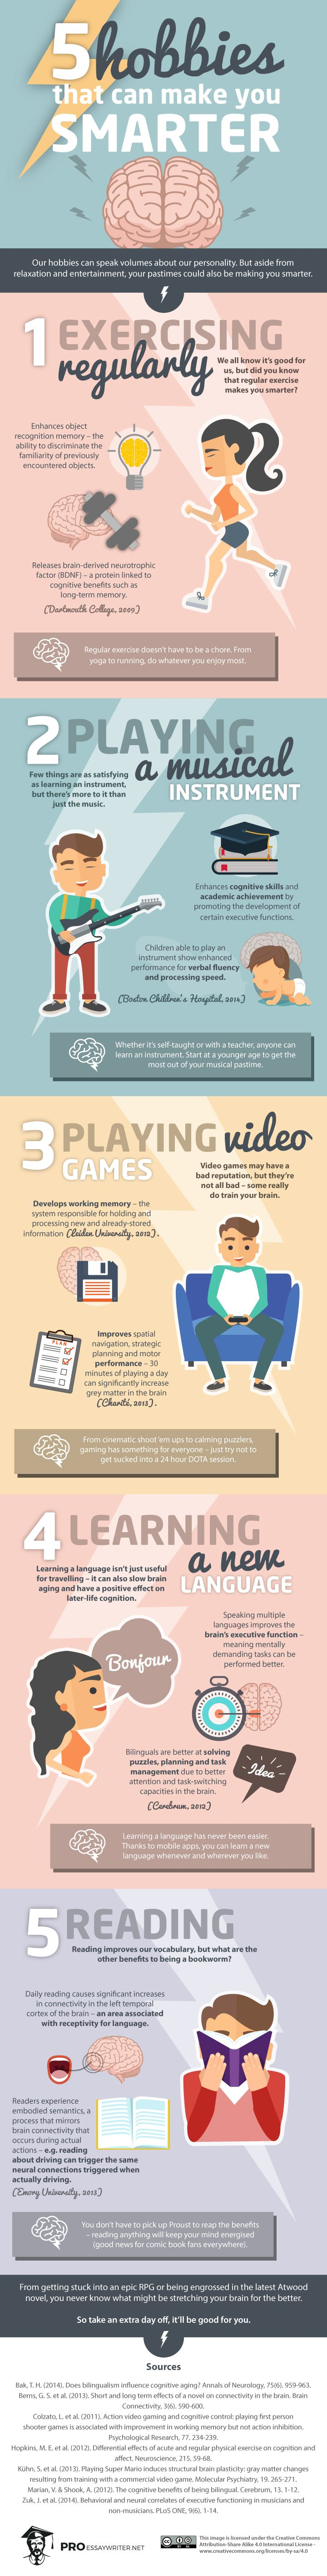 17 best ideas about essay writer creative writing what are 5 fun hobbies that can make you smarter infographic